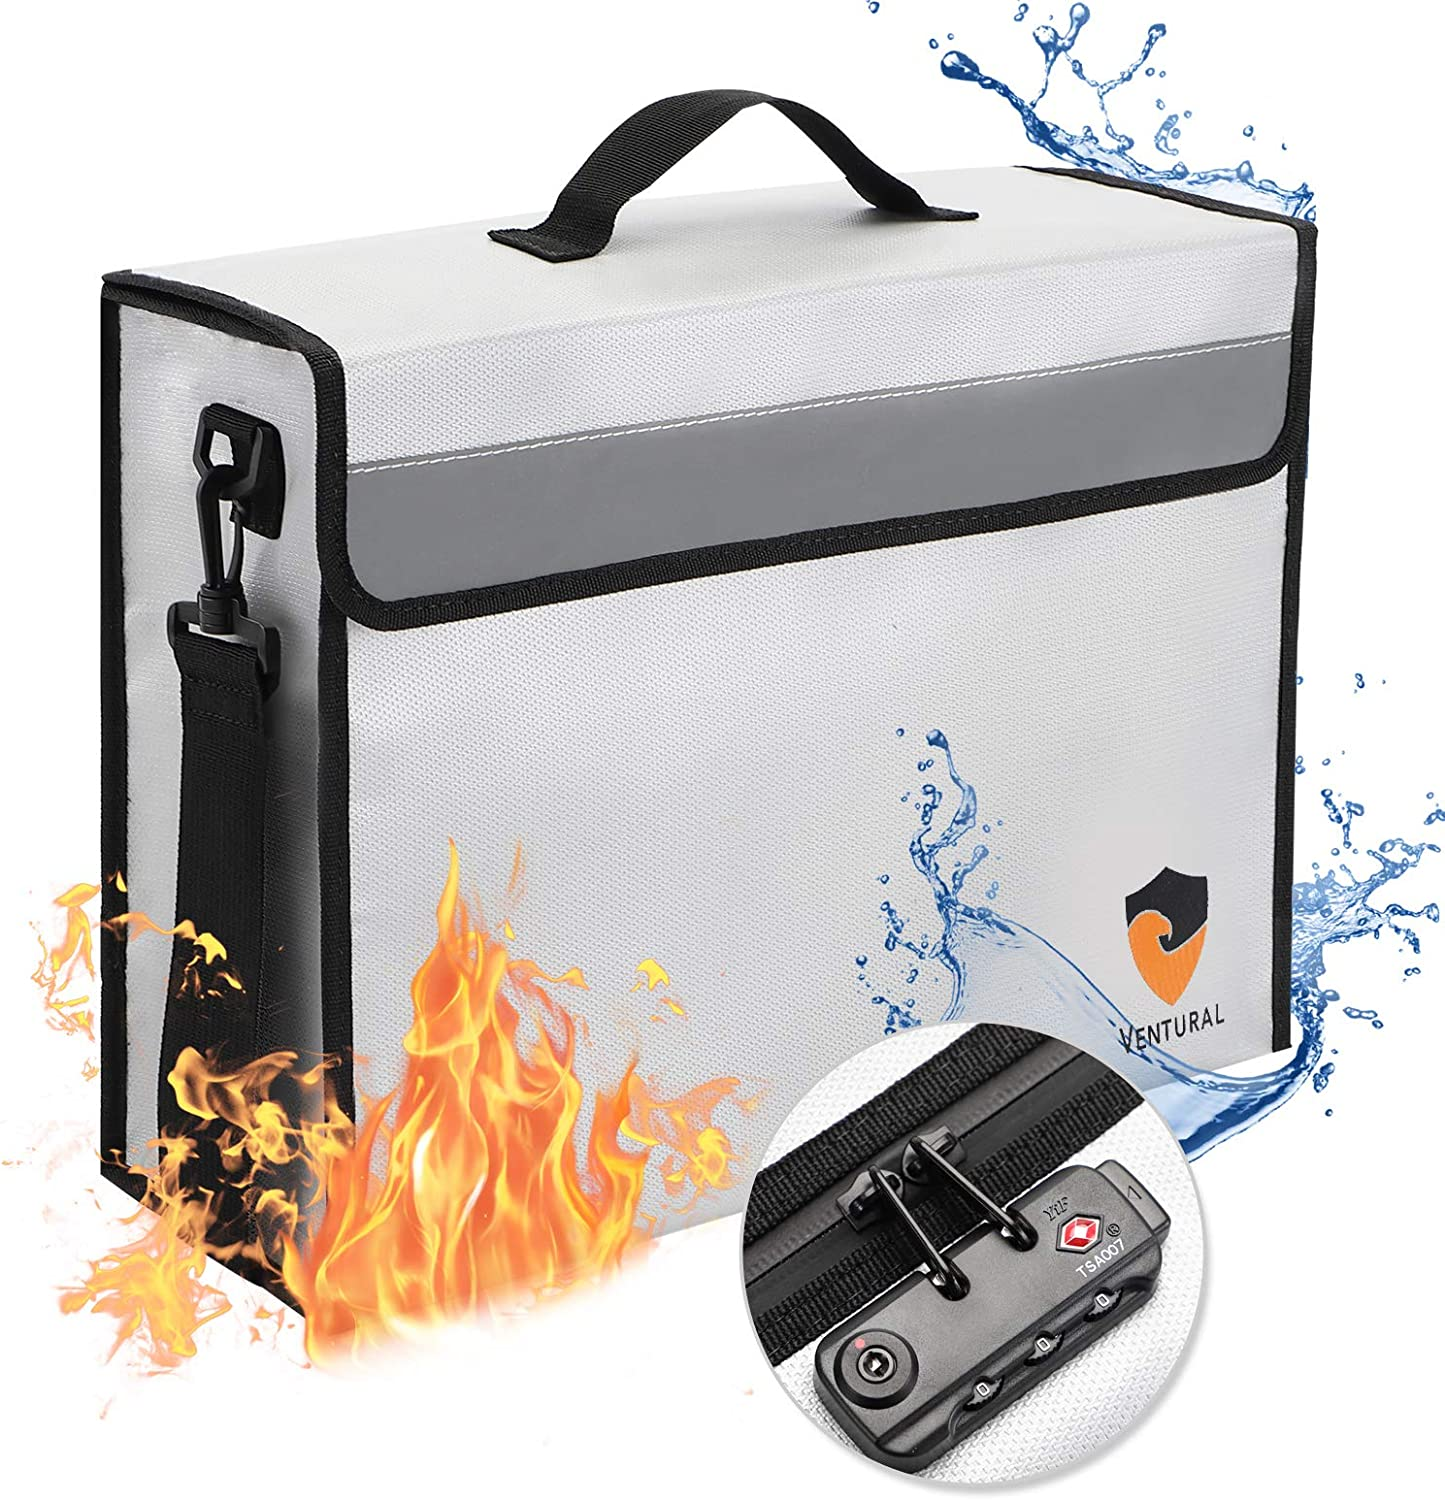 Firefrood Safe Money Document Bag with Lock Money Safety Box Fire Proof Containers for Important Ducuments Zipper Home Lockable Safes Storage